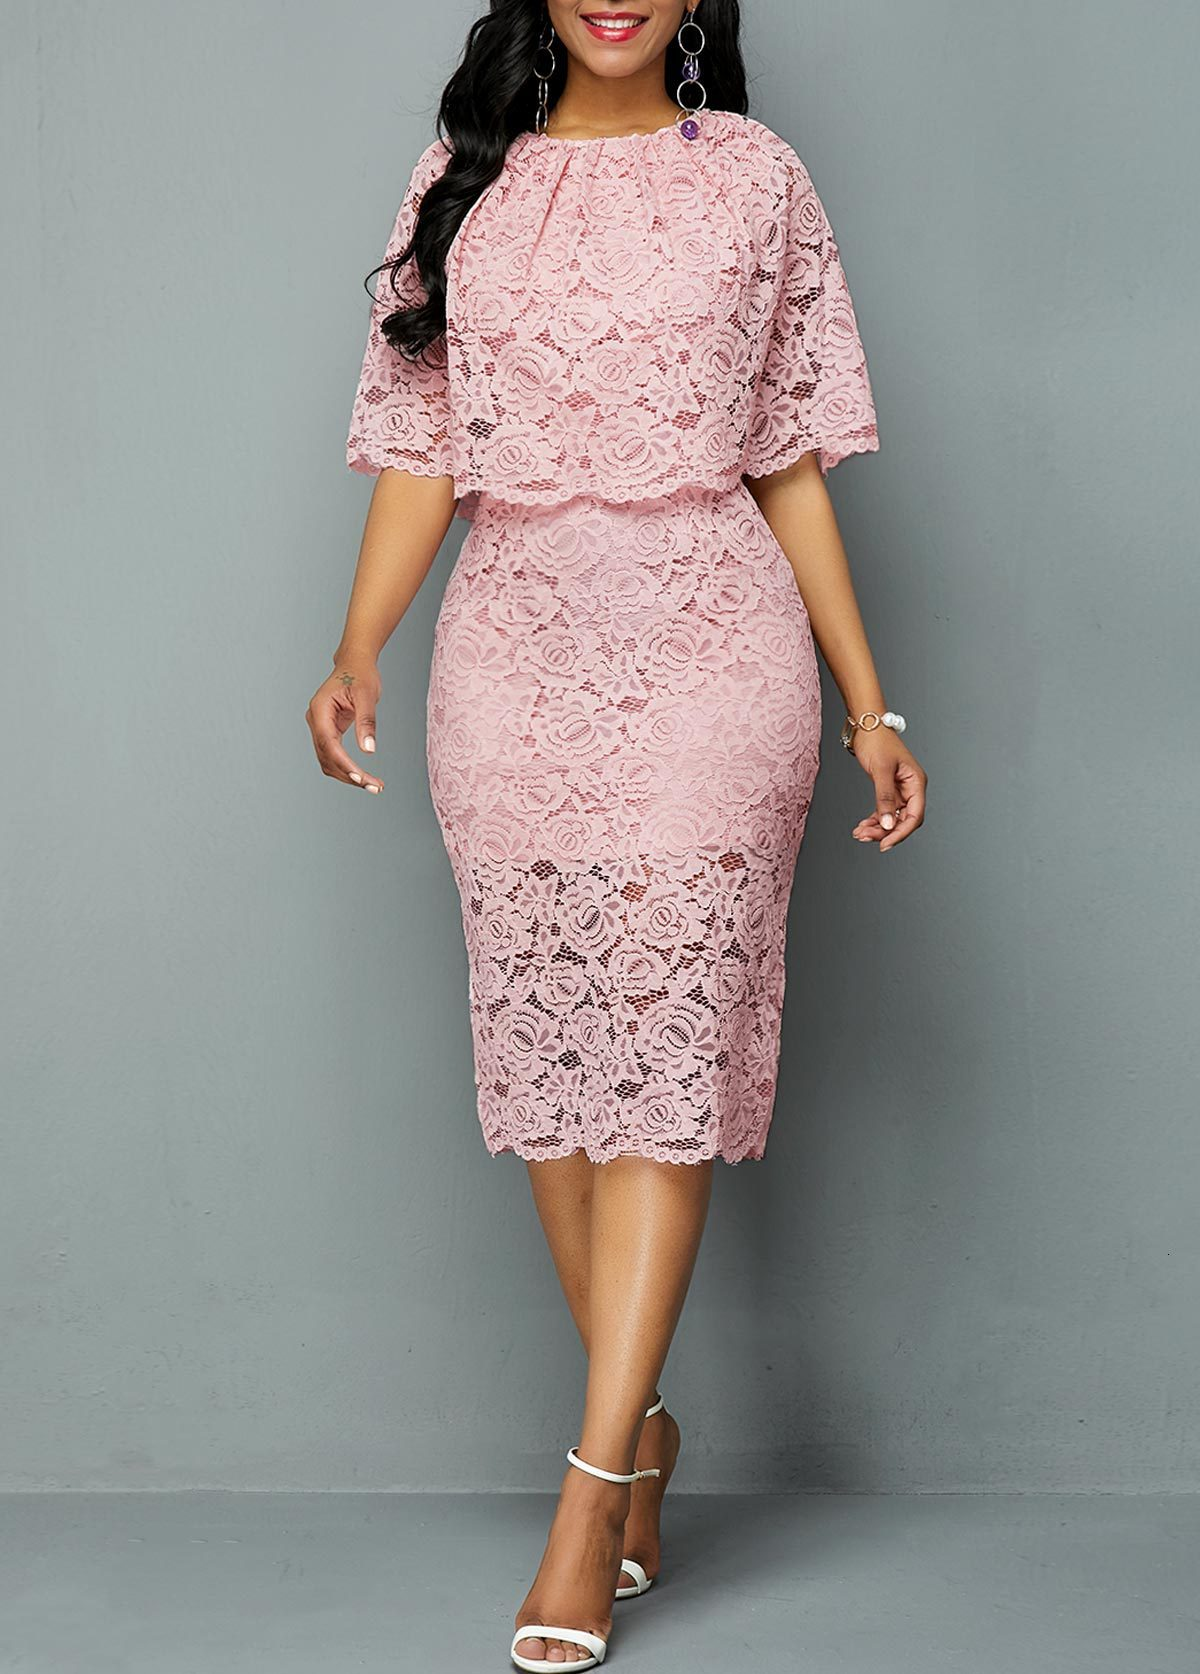 BacklakeGirls Pink Lace Round Neck Hollow Out Cocktail Dress With Cape Elegant Women Dress Plus Size Robe Mere De La Mariee 2019